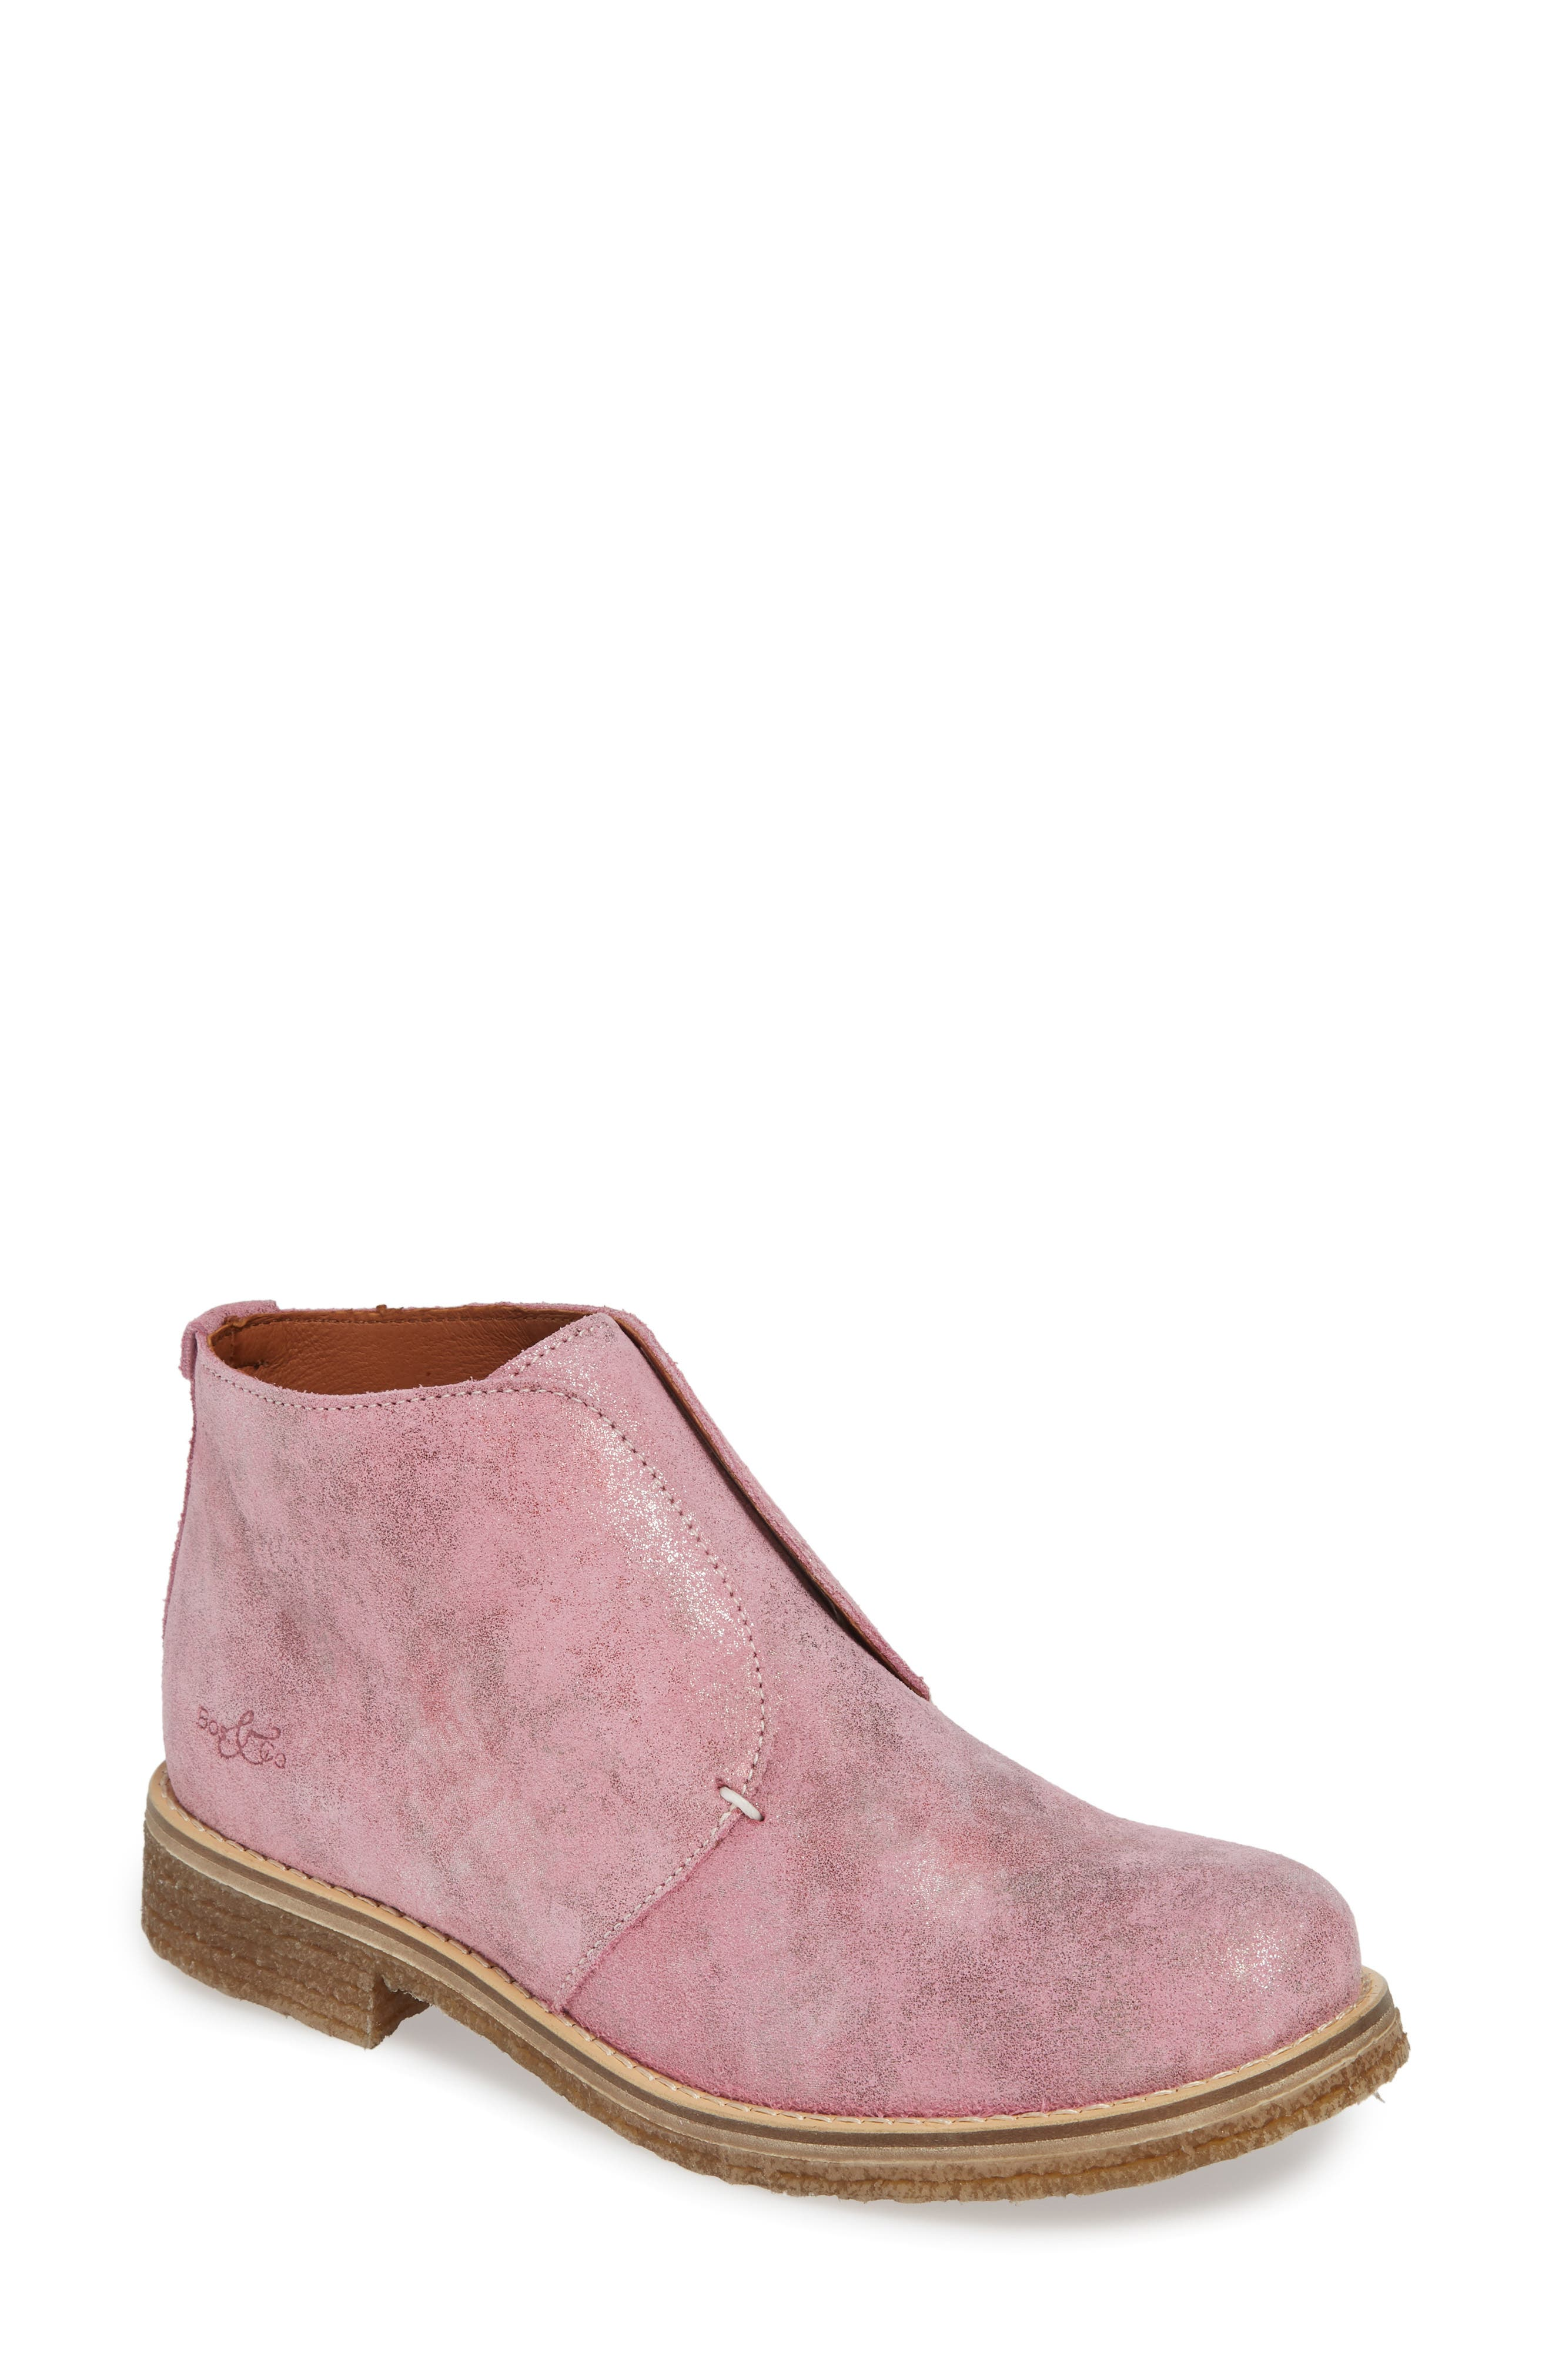 Bos. & Co. Tvol Laceless Chukka Boot - Pink